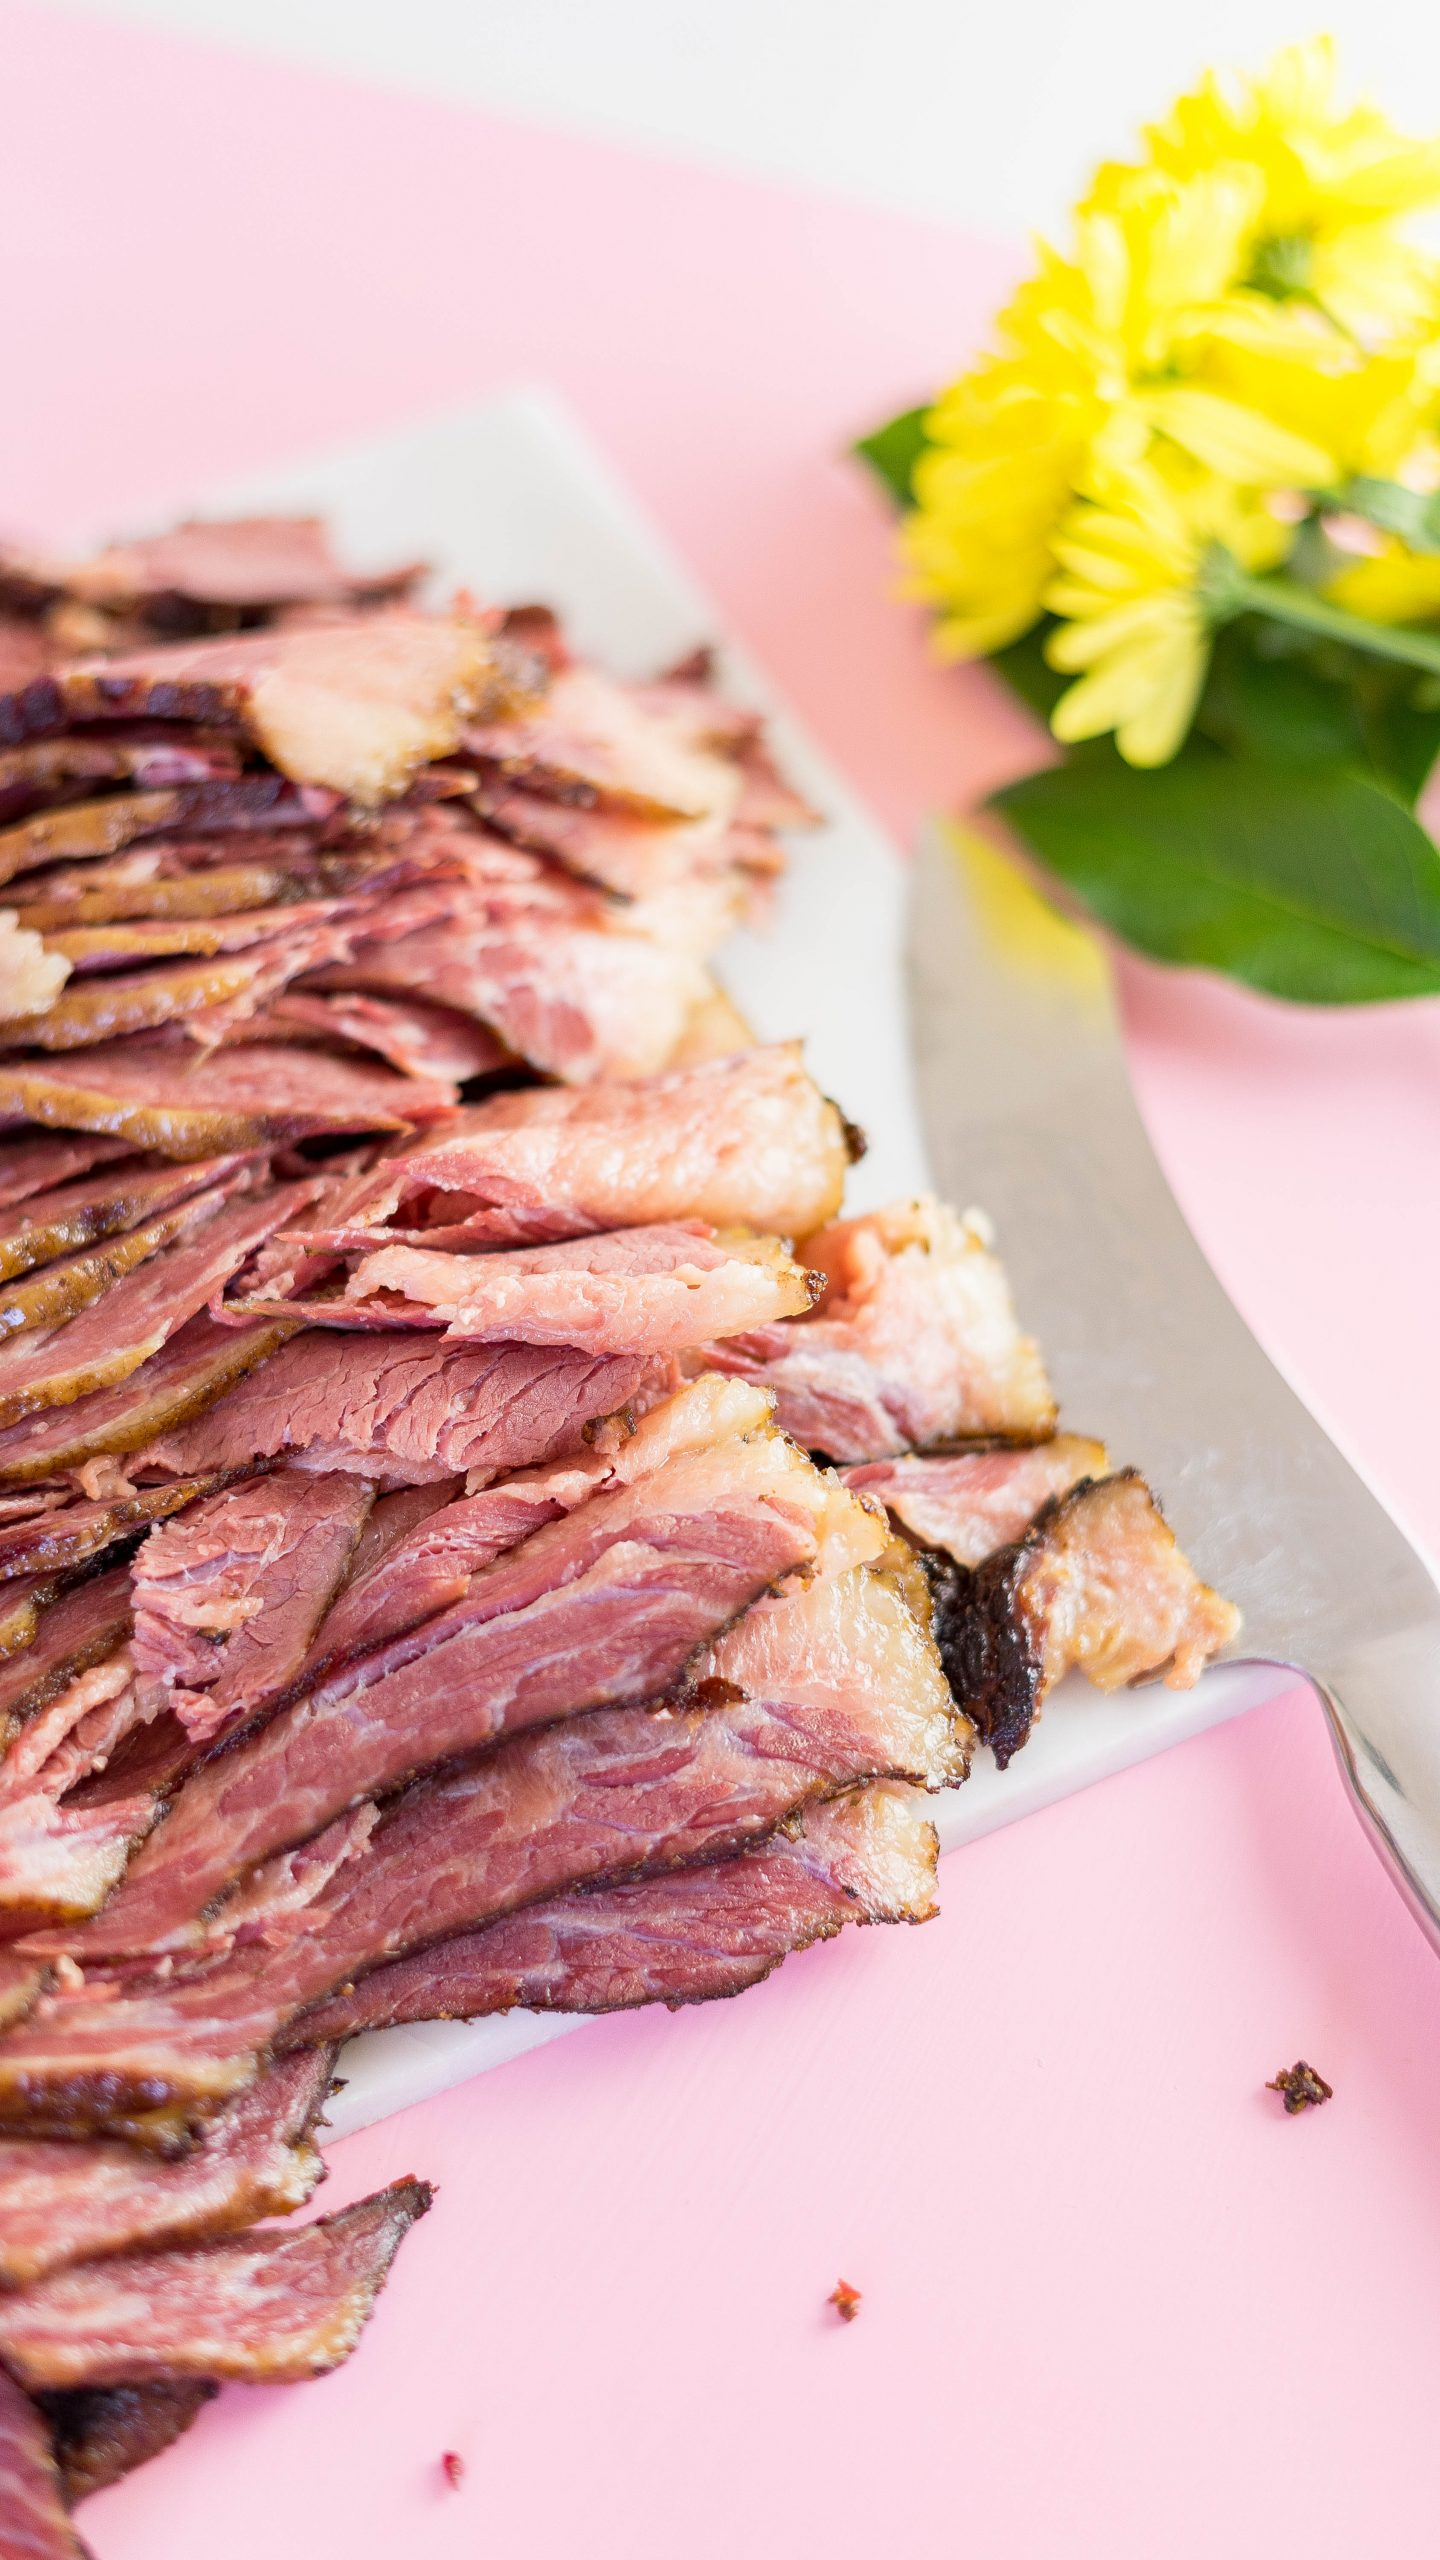 Sous Vide Pastrami A Duck S Oven